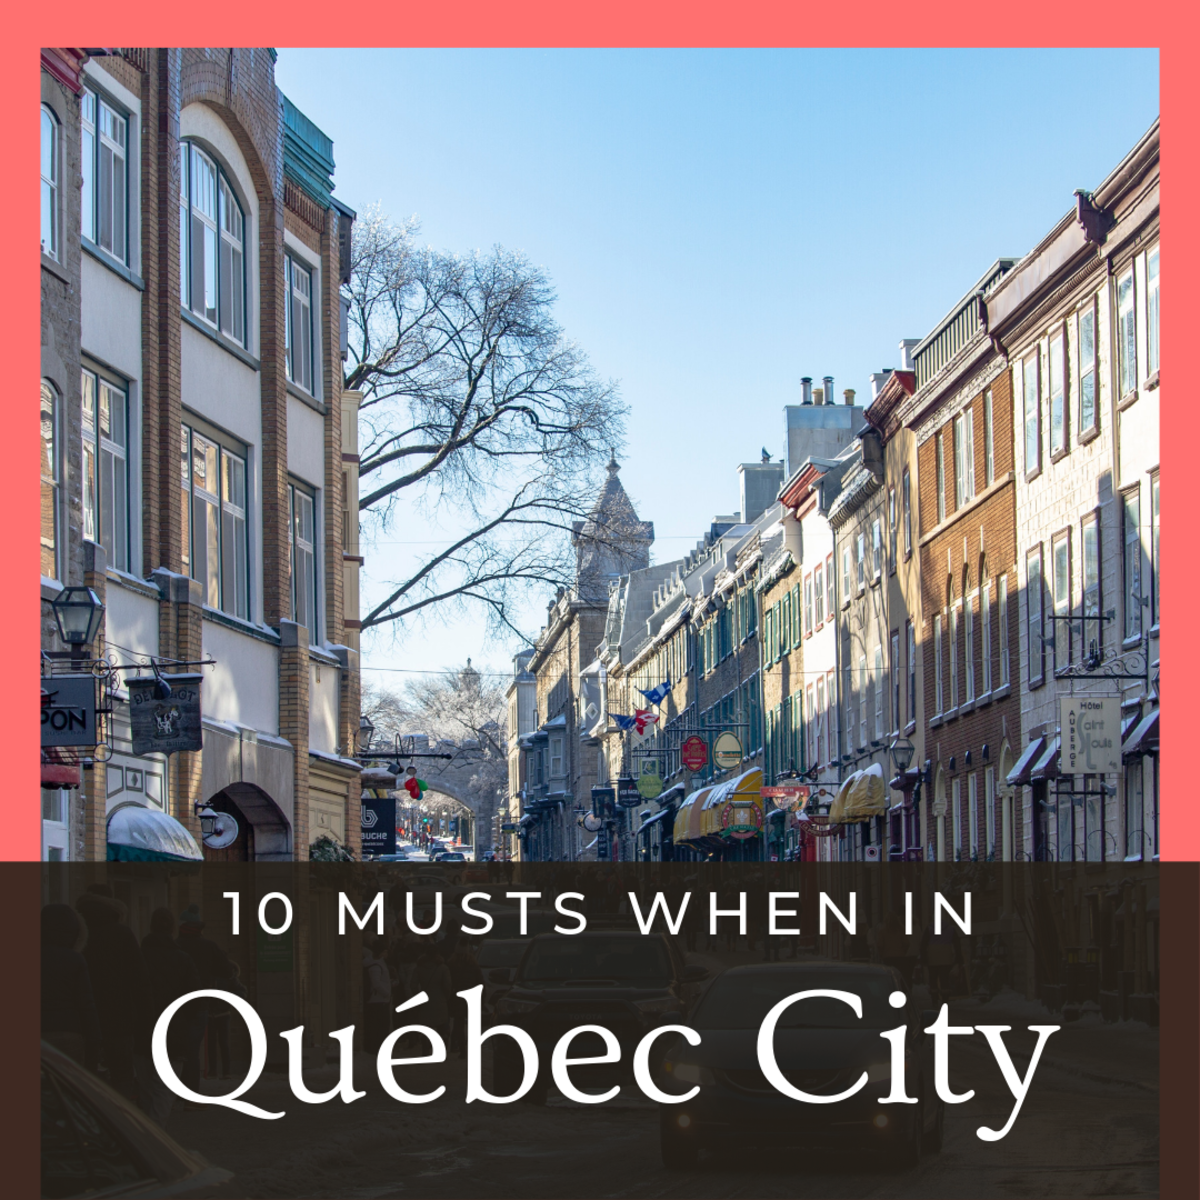 Québec City's charming warren of streets offers delights around every corner. Here are 10 Québécois experiences you simply cannot miss.